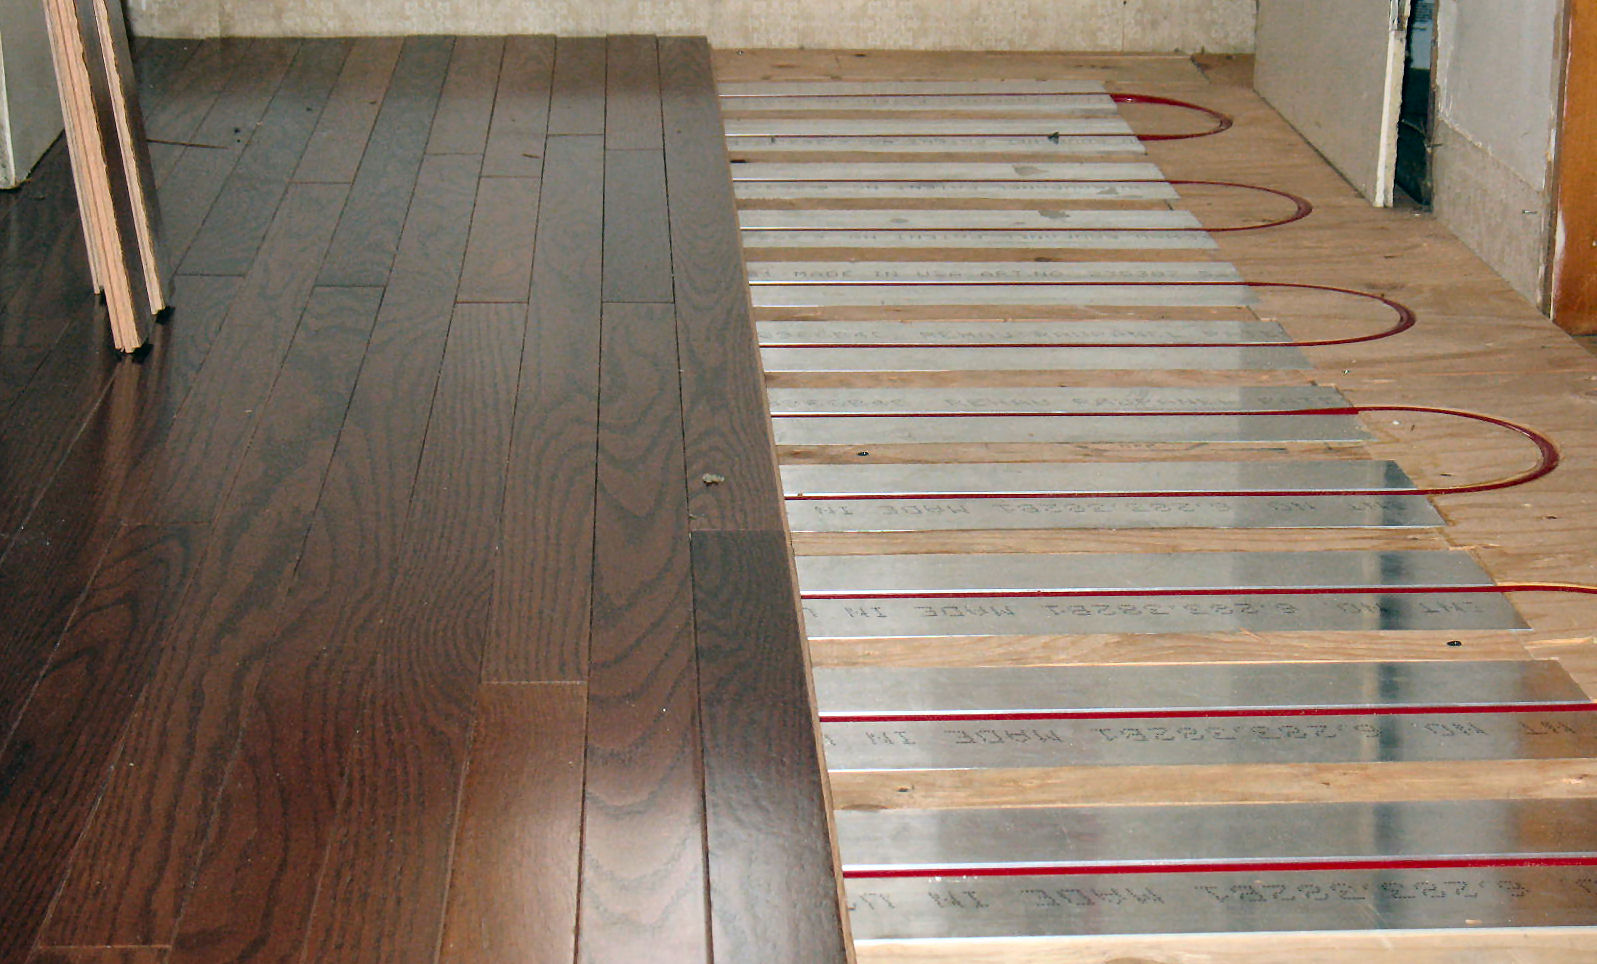 Janes Radiant Install Floor Heating Yourself